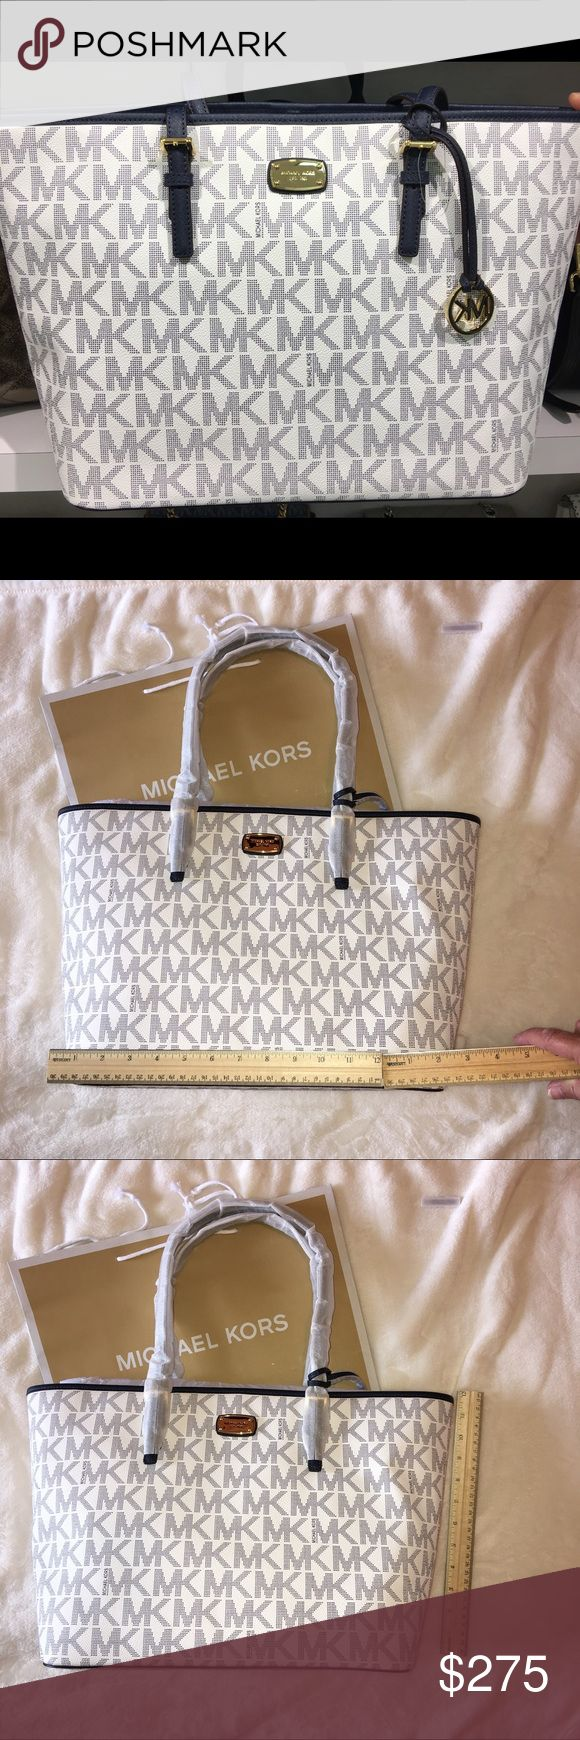 NWT Michael Kors Large Navy and White Tote NWT Michael Kors large tote bag in navy blue and white.  Great colors and style for the summer! Very roomy inside with a large zippered pocket, and four open pockets.  Outside back has an open pocket as well (see photos).  Has a gold clip latch closure and gold MK dangling emblem on front handle.  This is a gorgeous bag!  New in original packaging.  No trades on this item. KORS Michael Kors Bags Totes